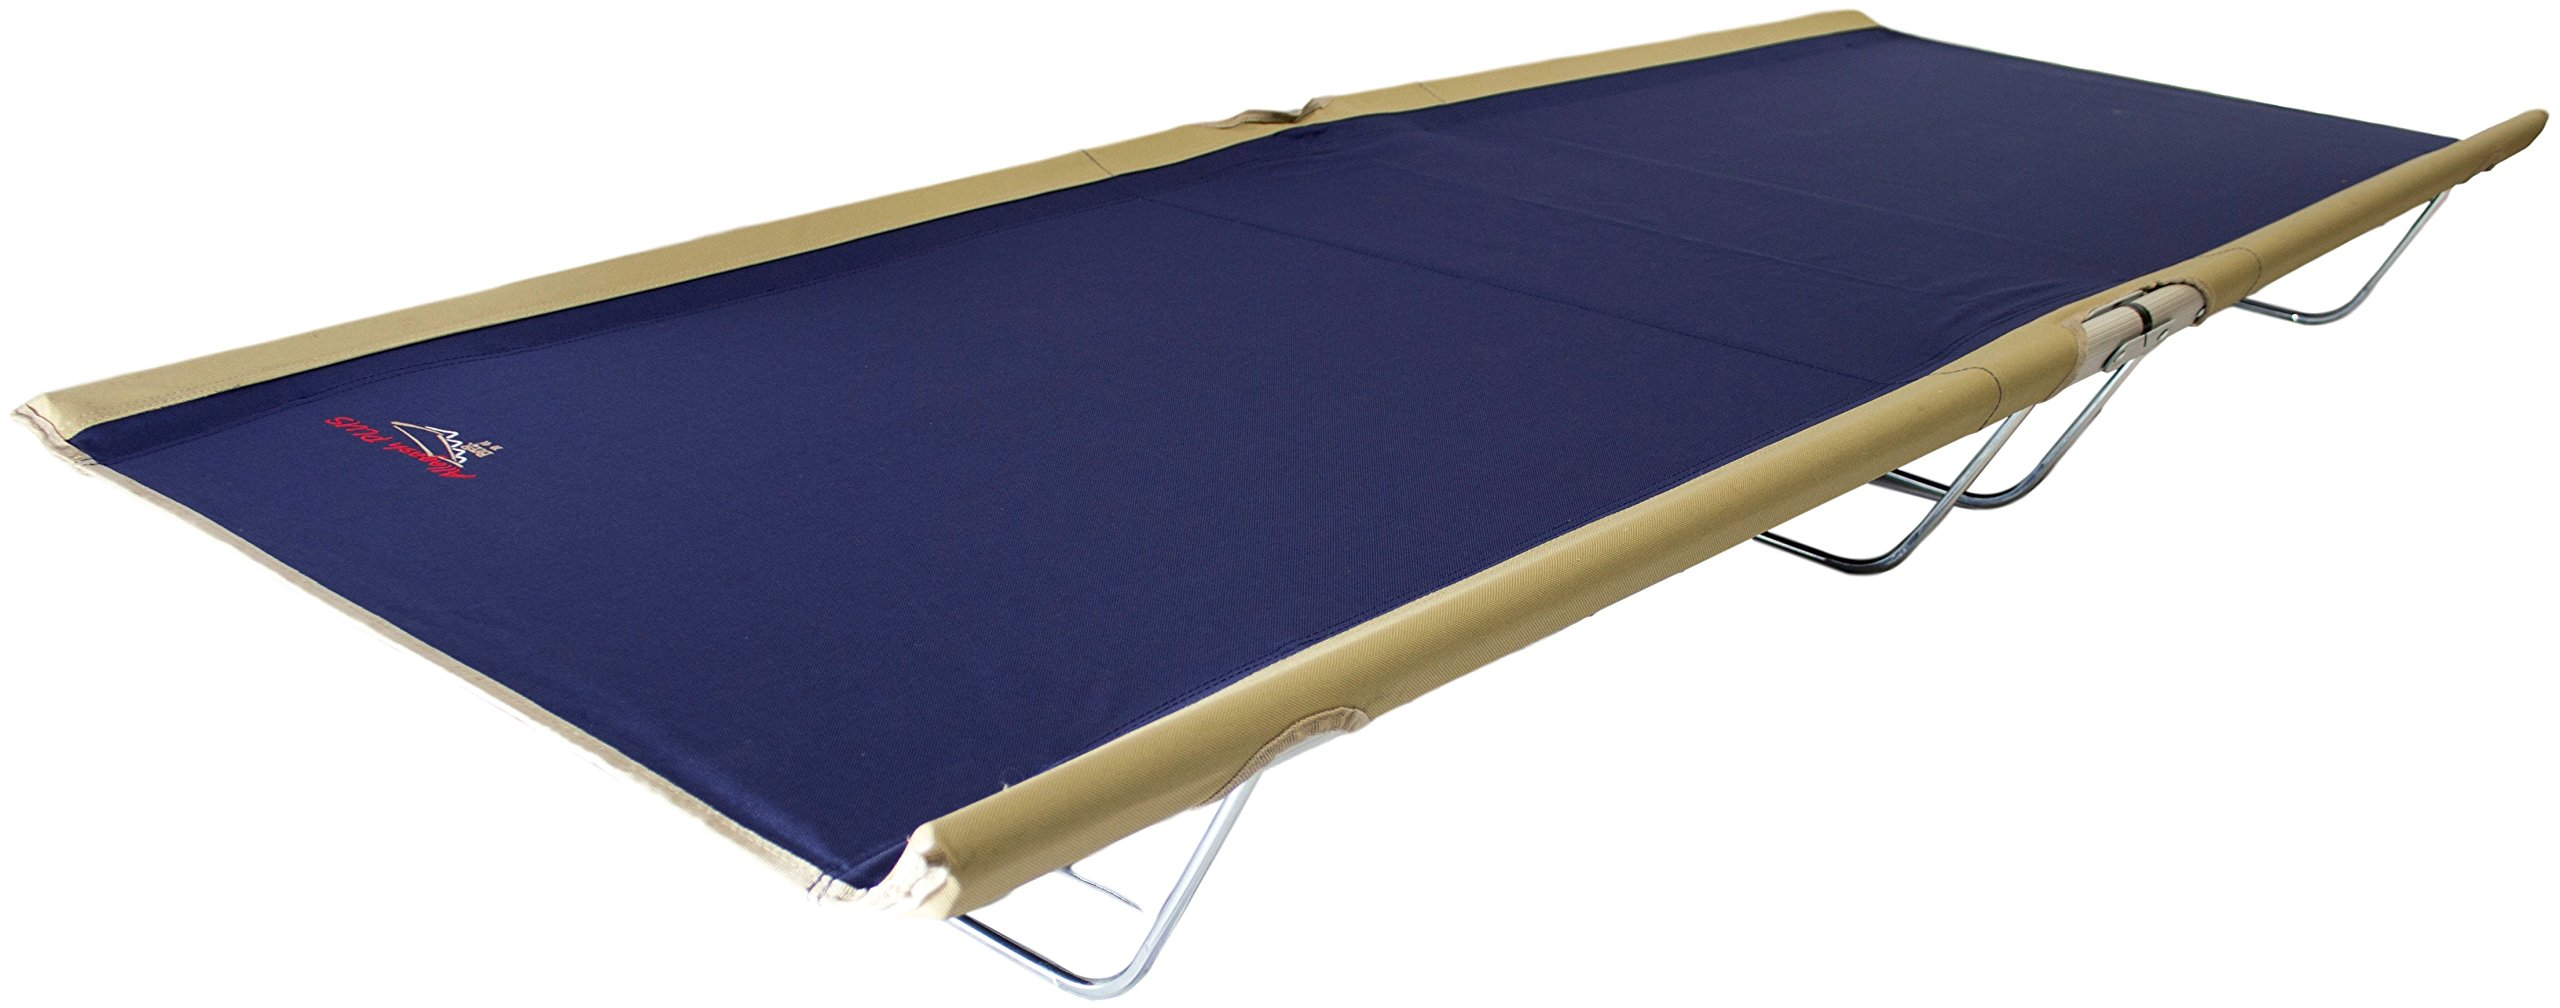 BYER OF MAINE, Allagash Plus, Cot, 76''L X 30''W X 8''H, Lightweight Cot, Extra Wide, Camping Cots Adult, Holds up to 250lbs, Single, Portable Camping Cot by BYER OF MAINE